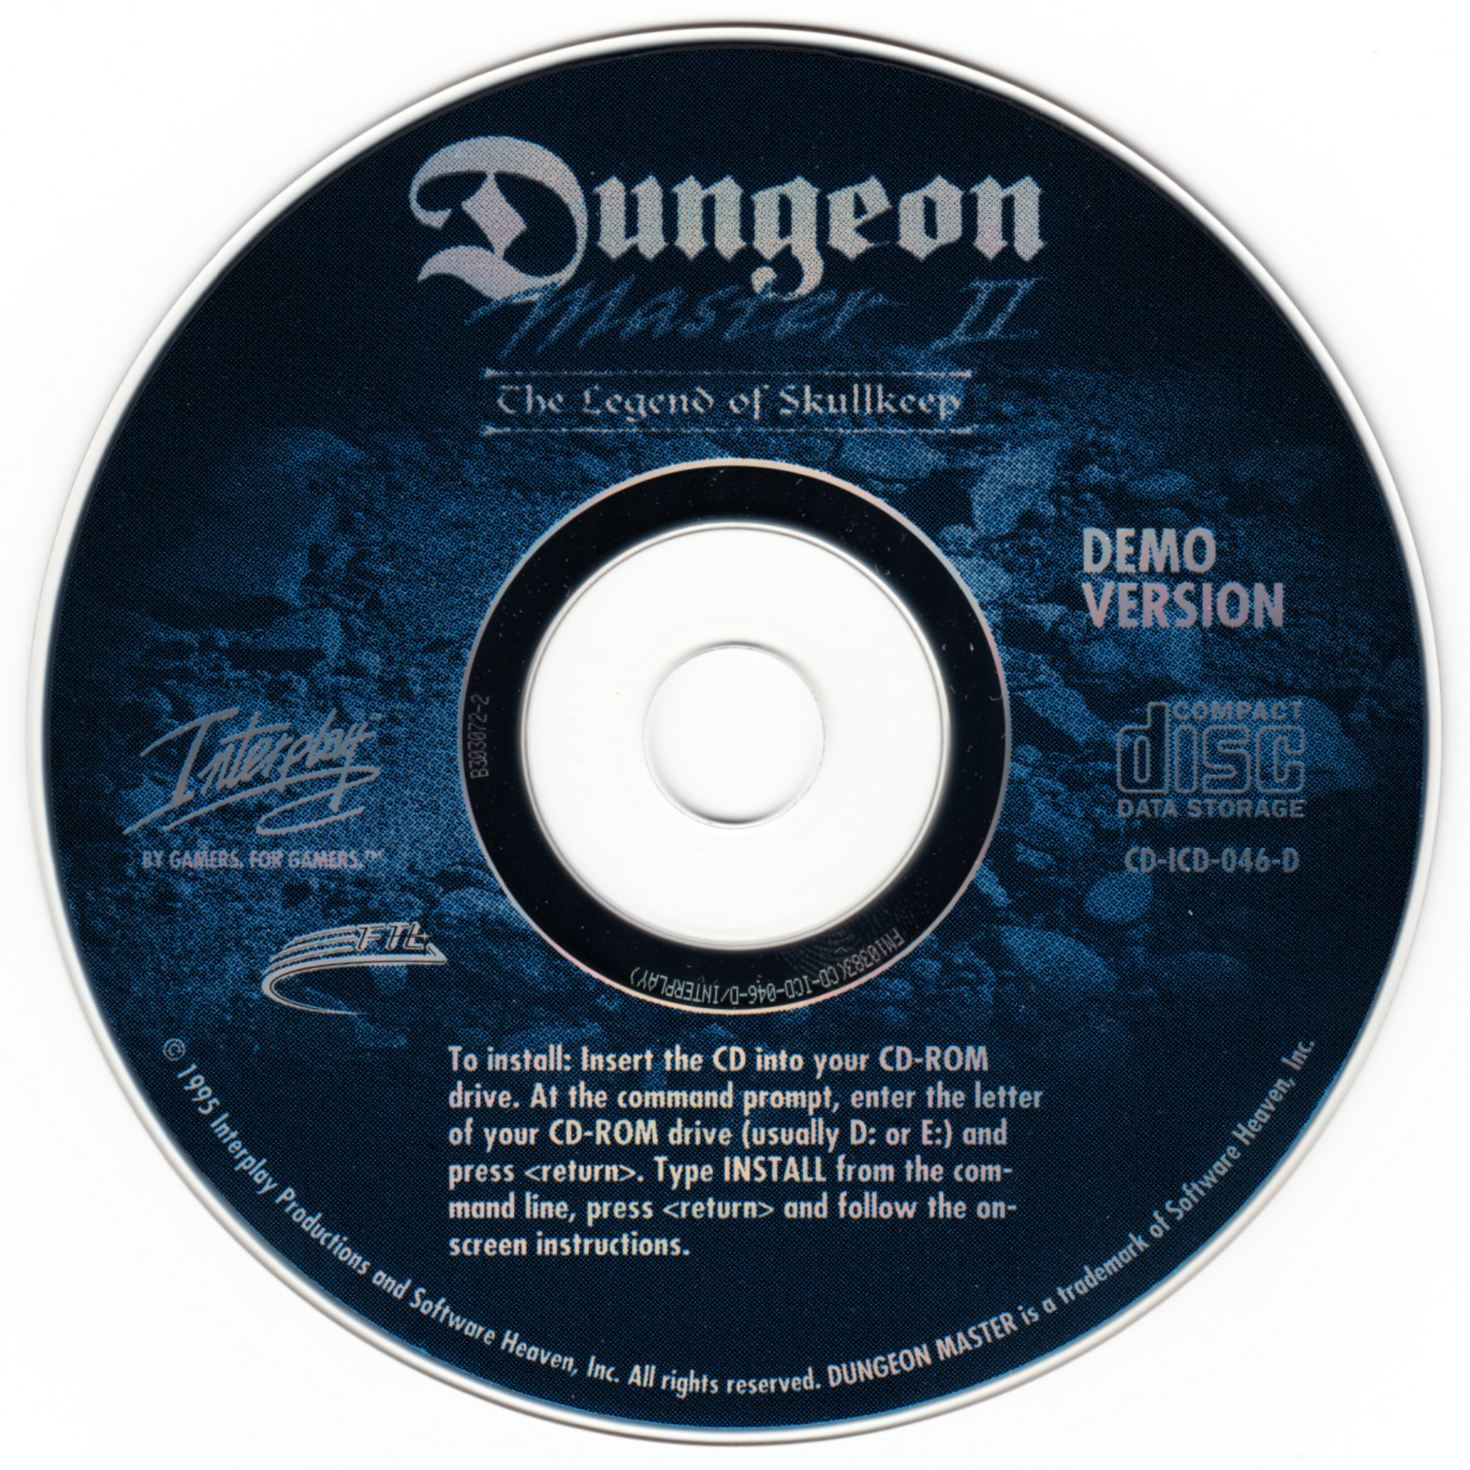 Retailer Kit - Dungeon Master II - US - PC Demo Compact Disc - Front - Scan